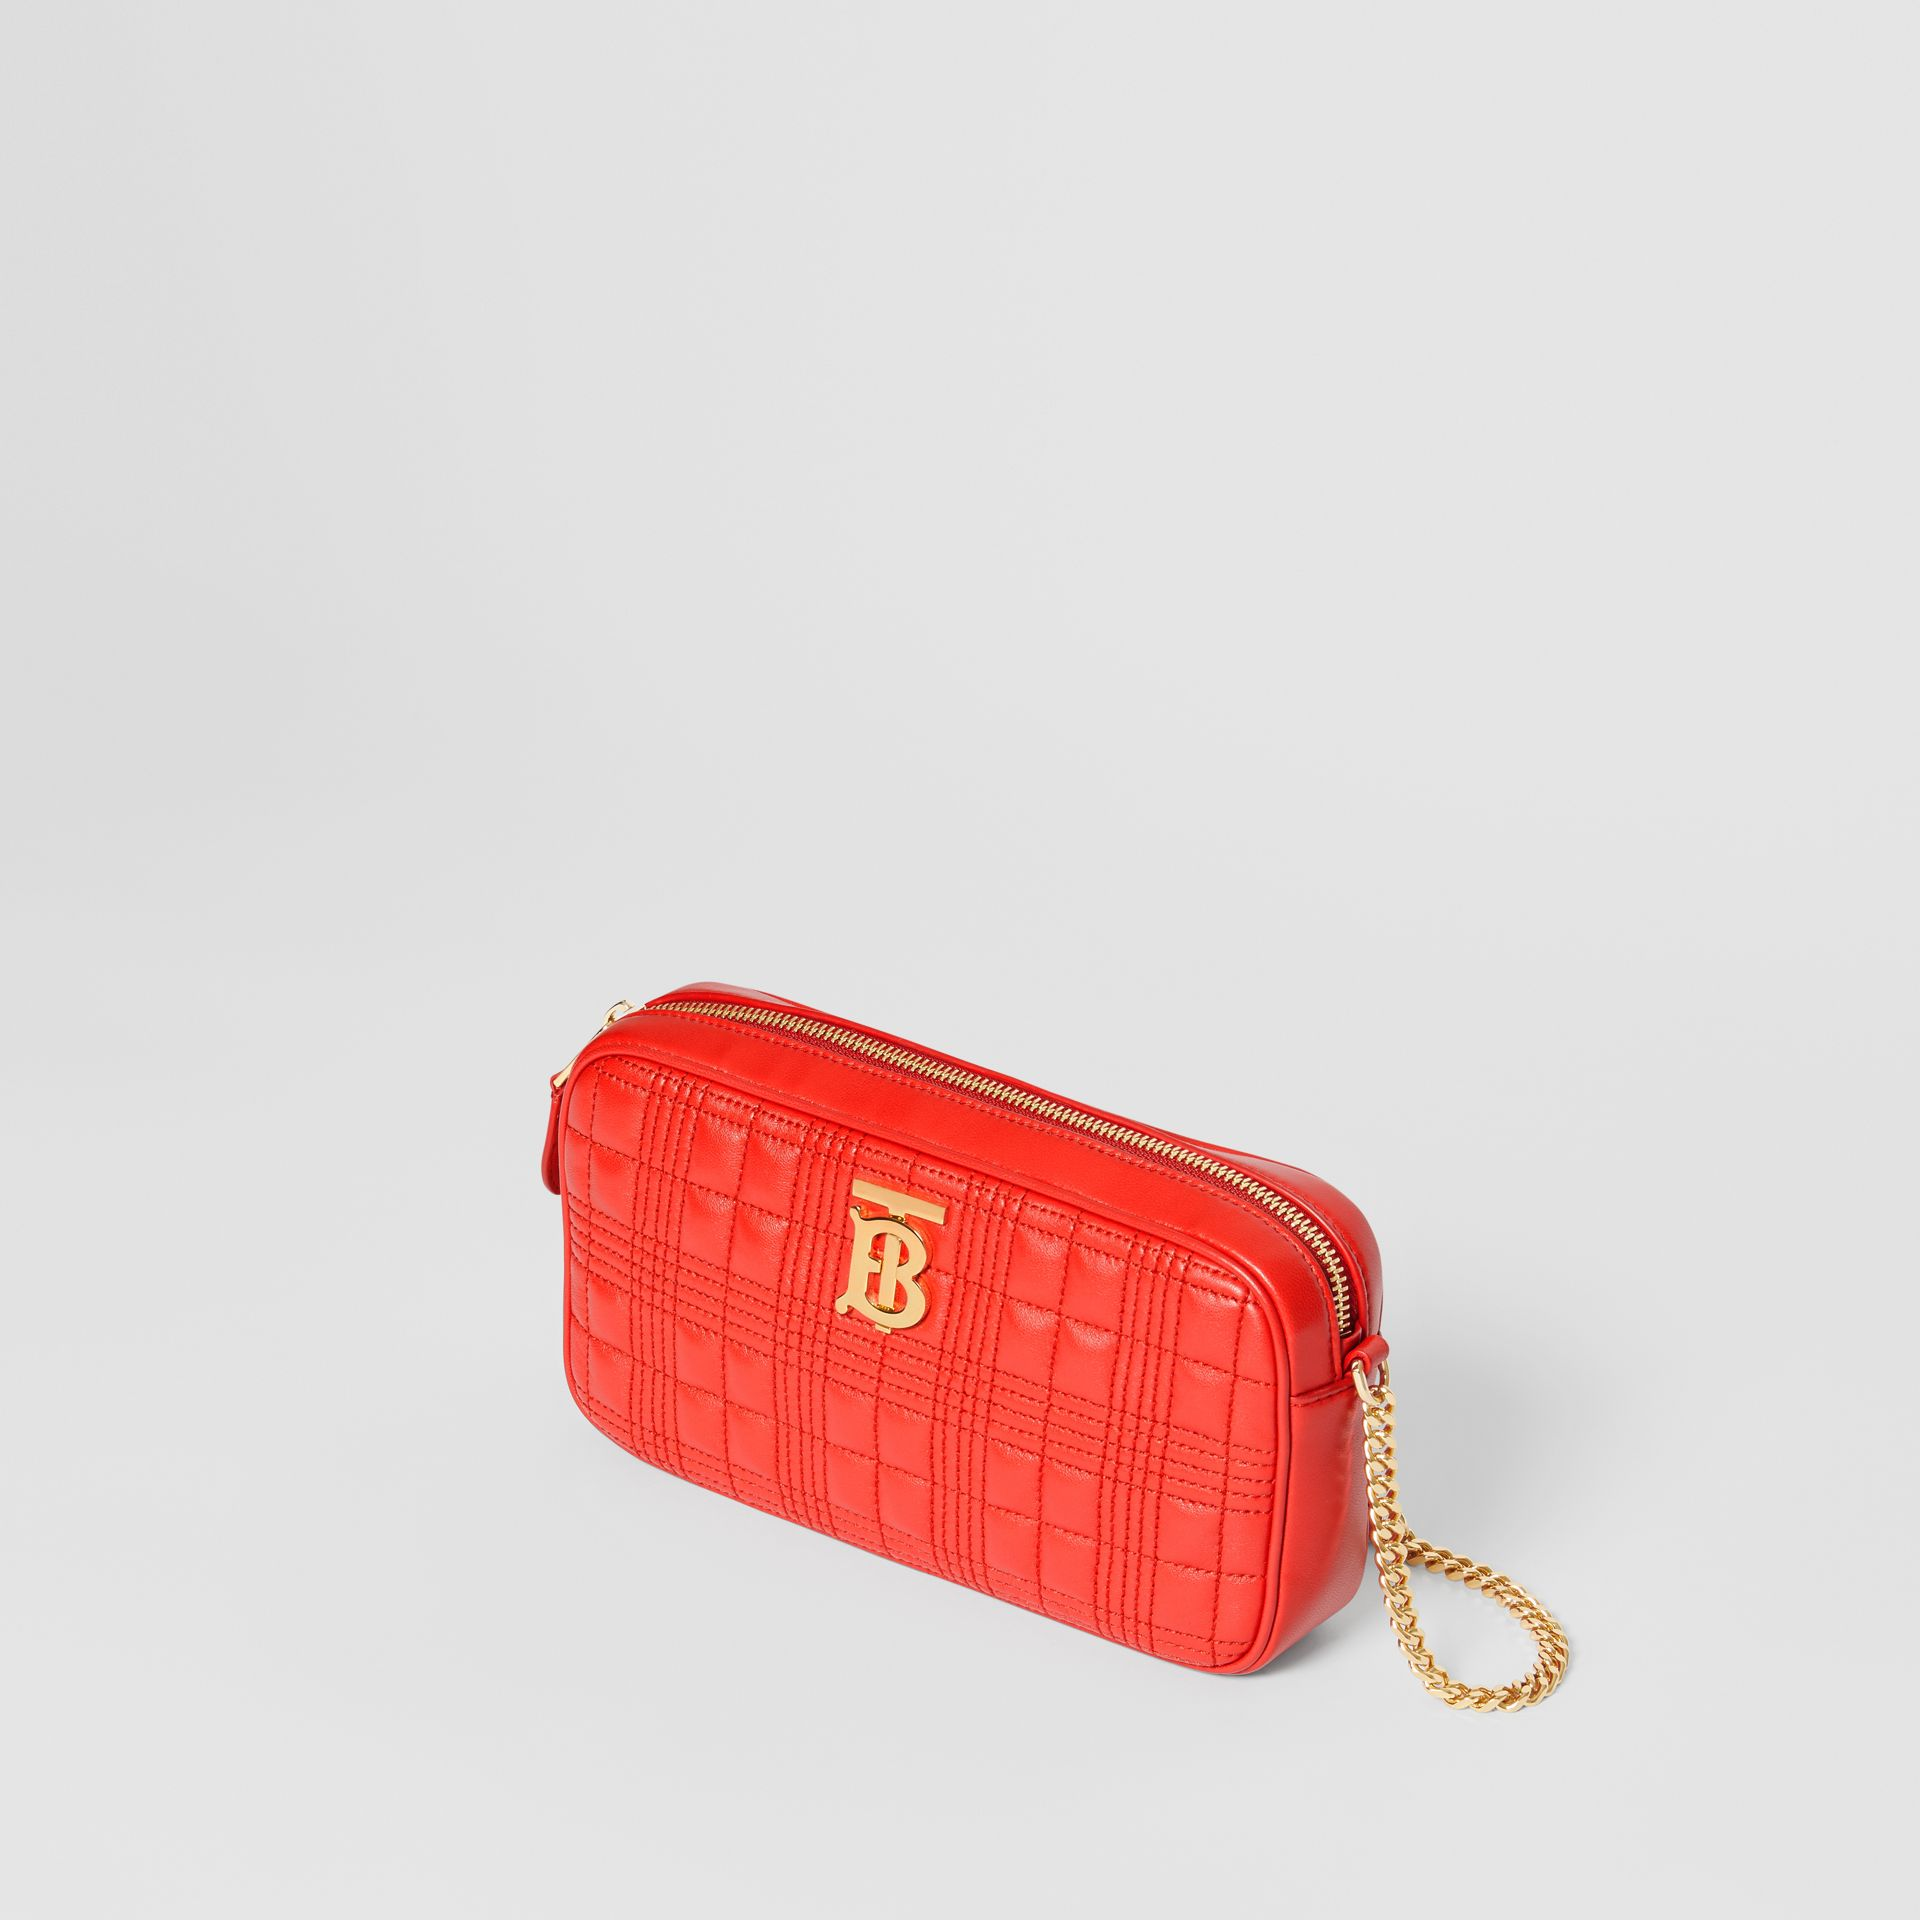 Quilted Check Lambskin Camera Bag in Bright Red - Women | Burberry - gallery image 3